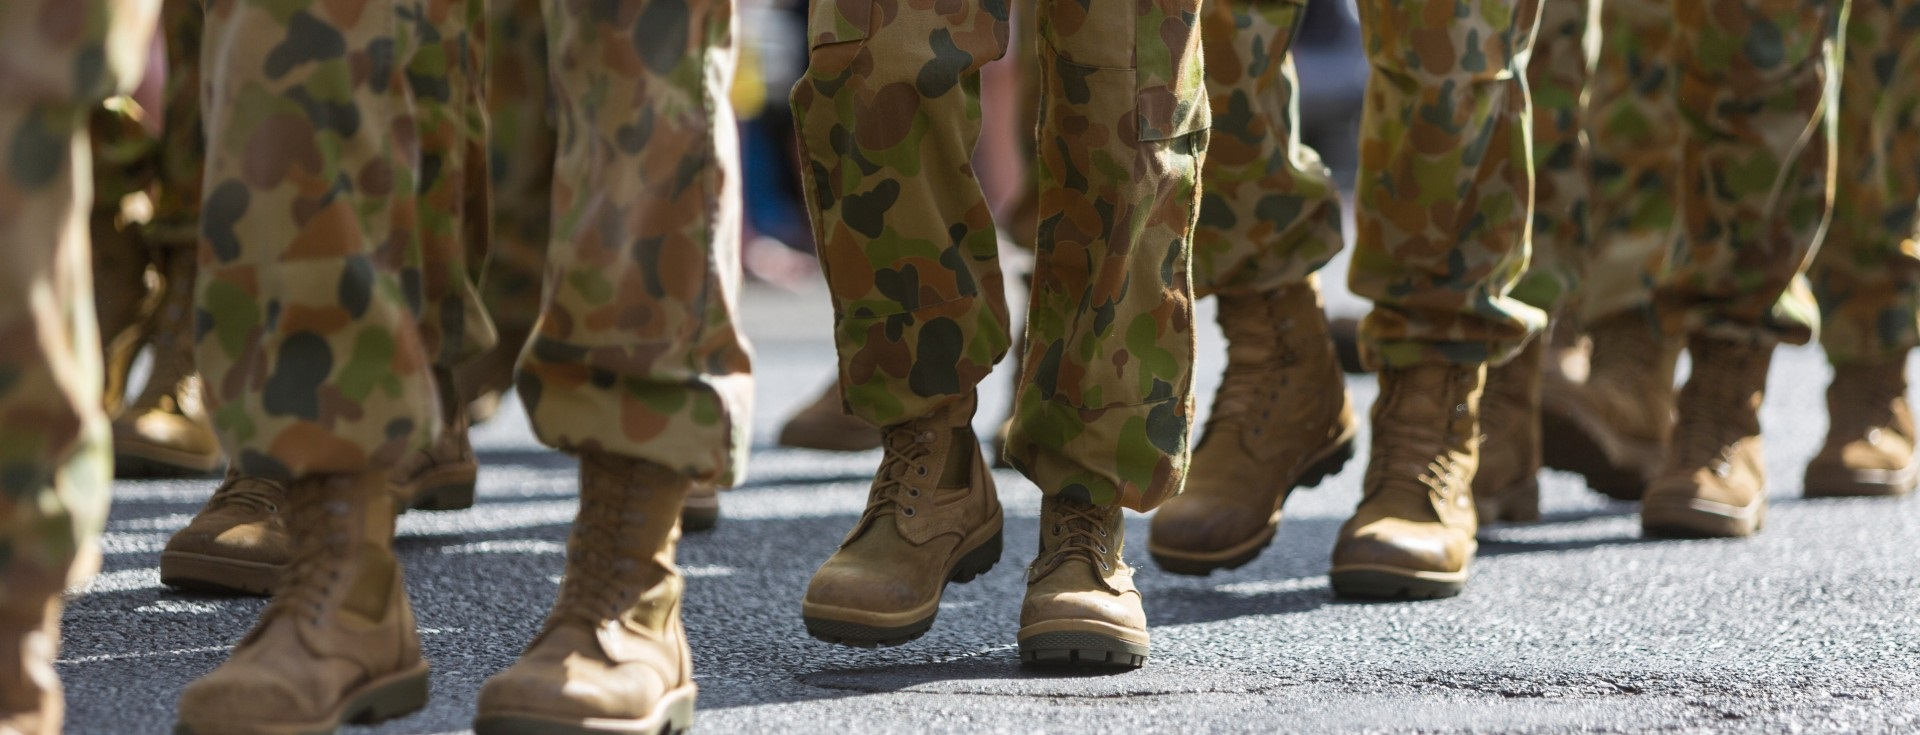 Feet of soldiers marching at ANZAC day